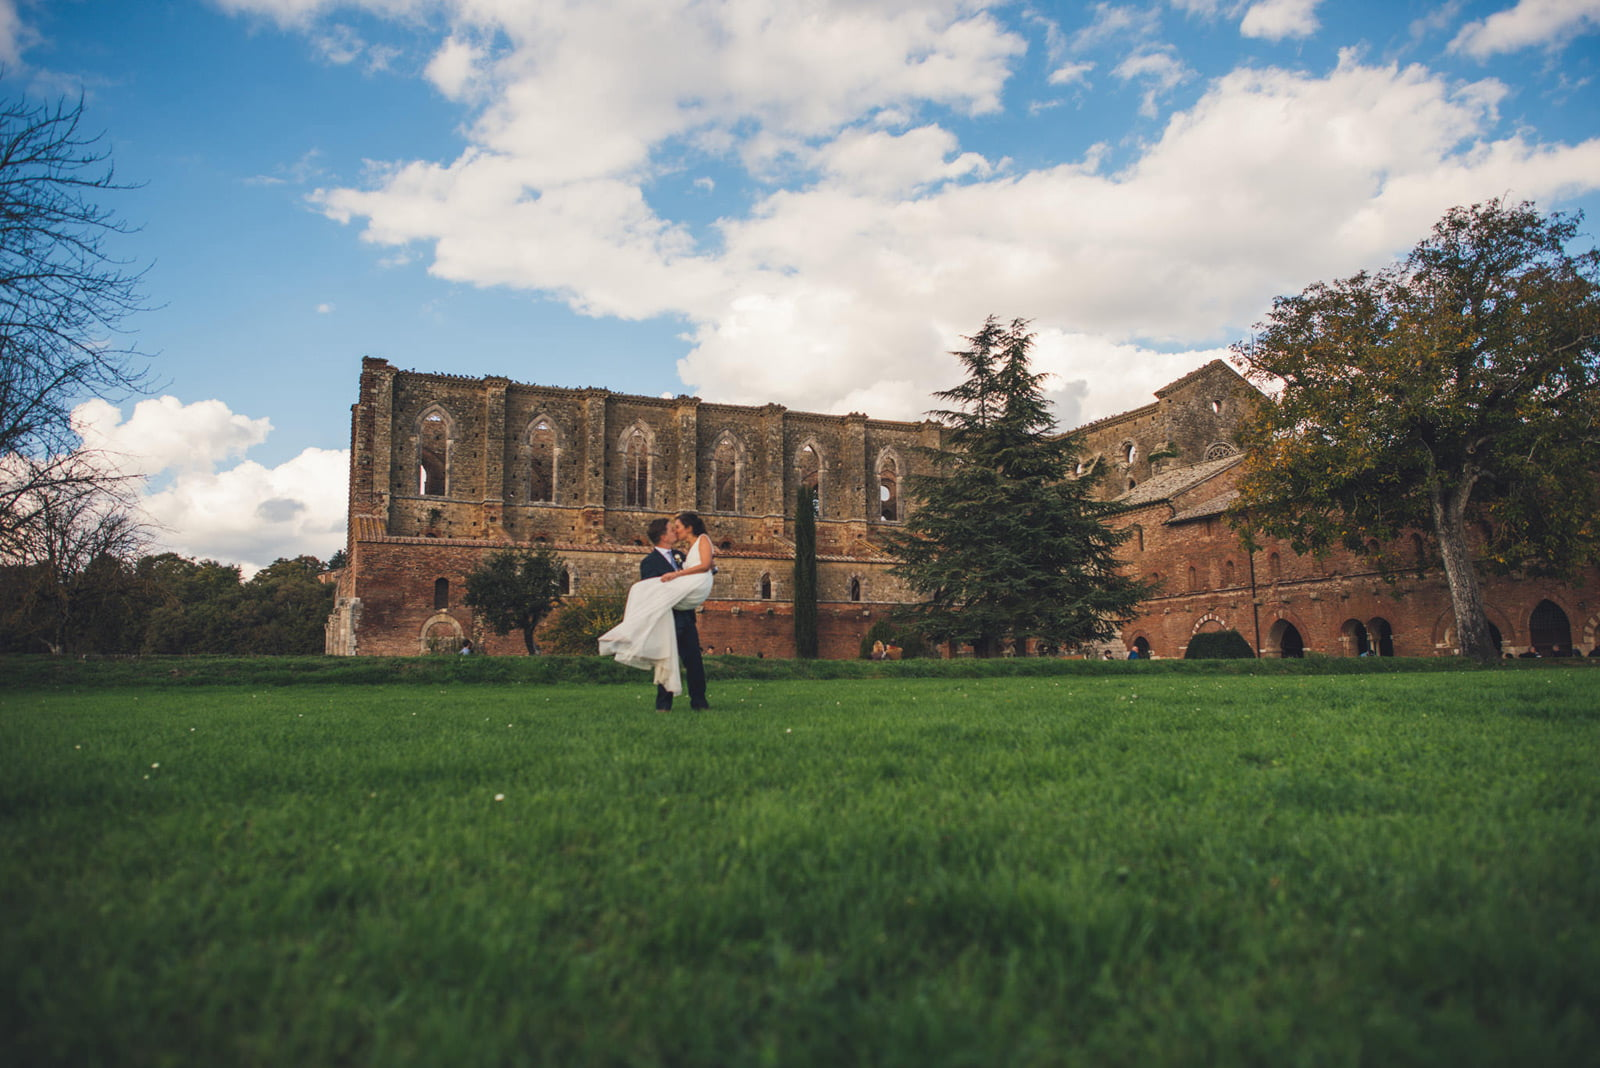 081-wedding-tuscany-san-galgano-siena-photographer